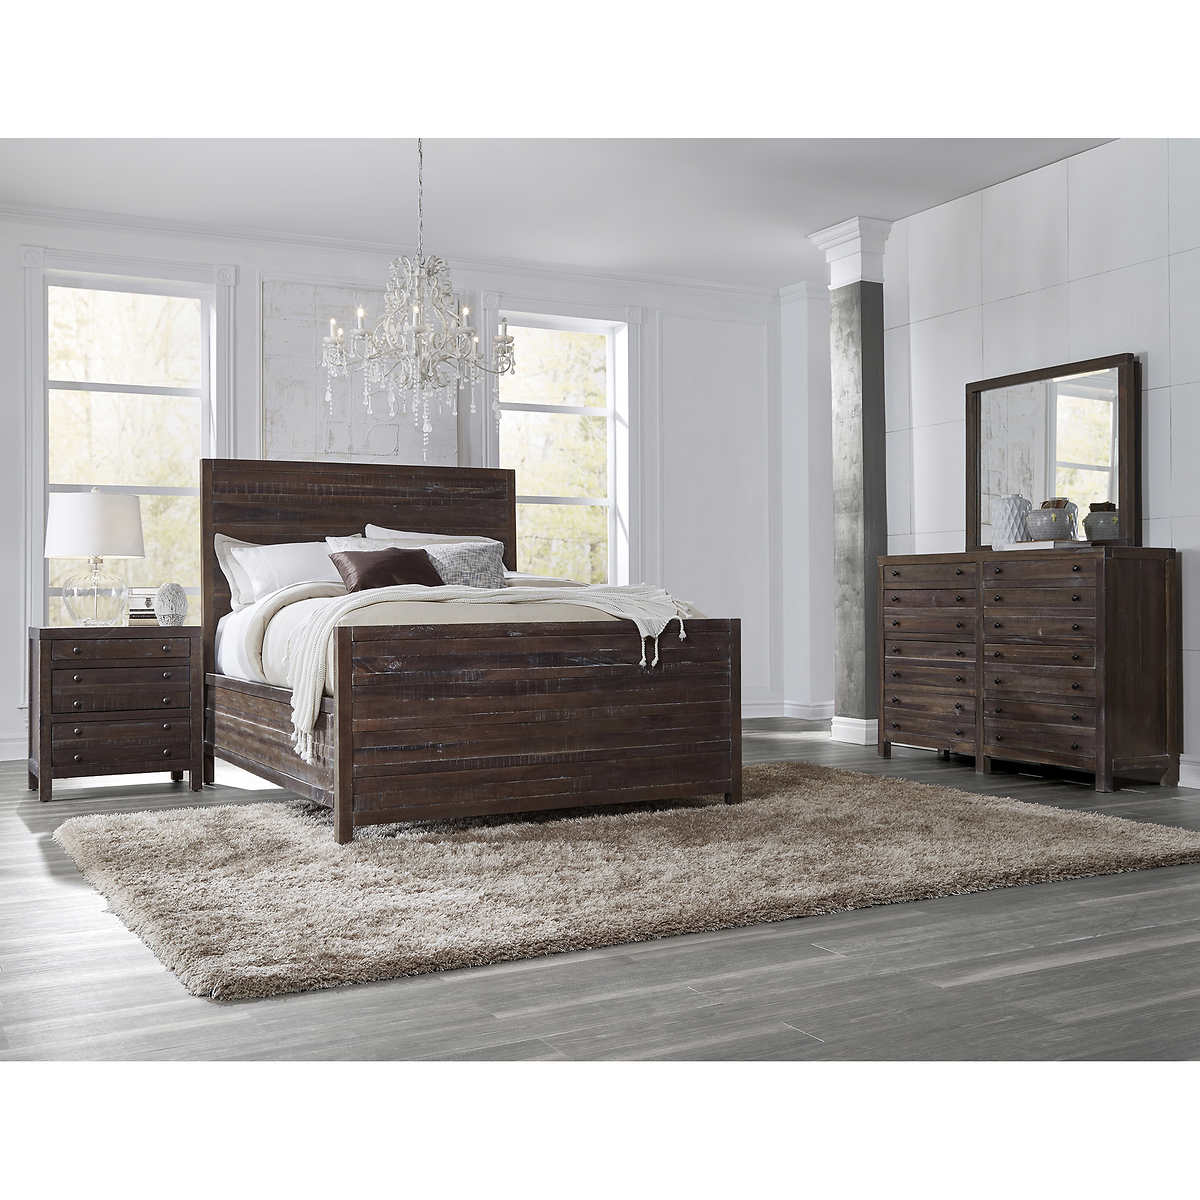 Torsten 5-Piece King Bedroom Set